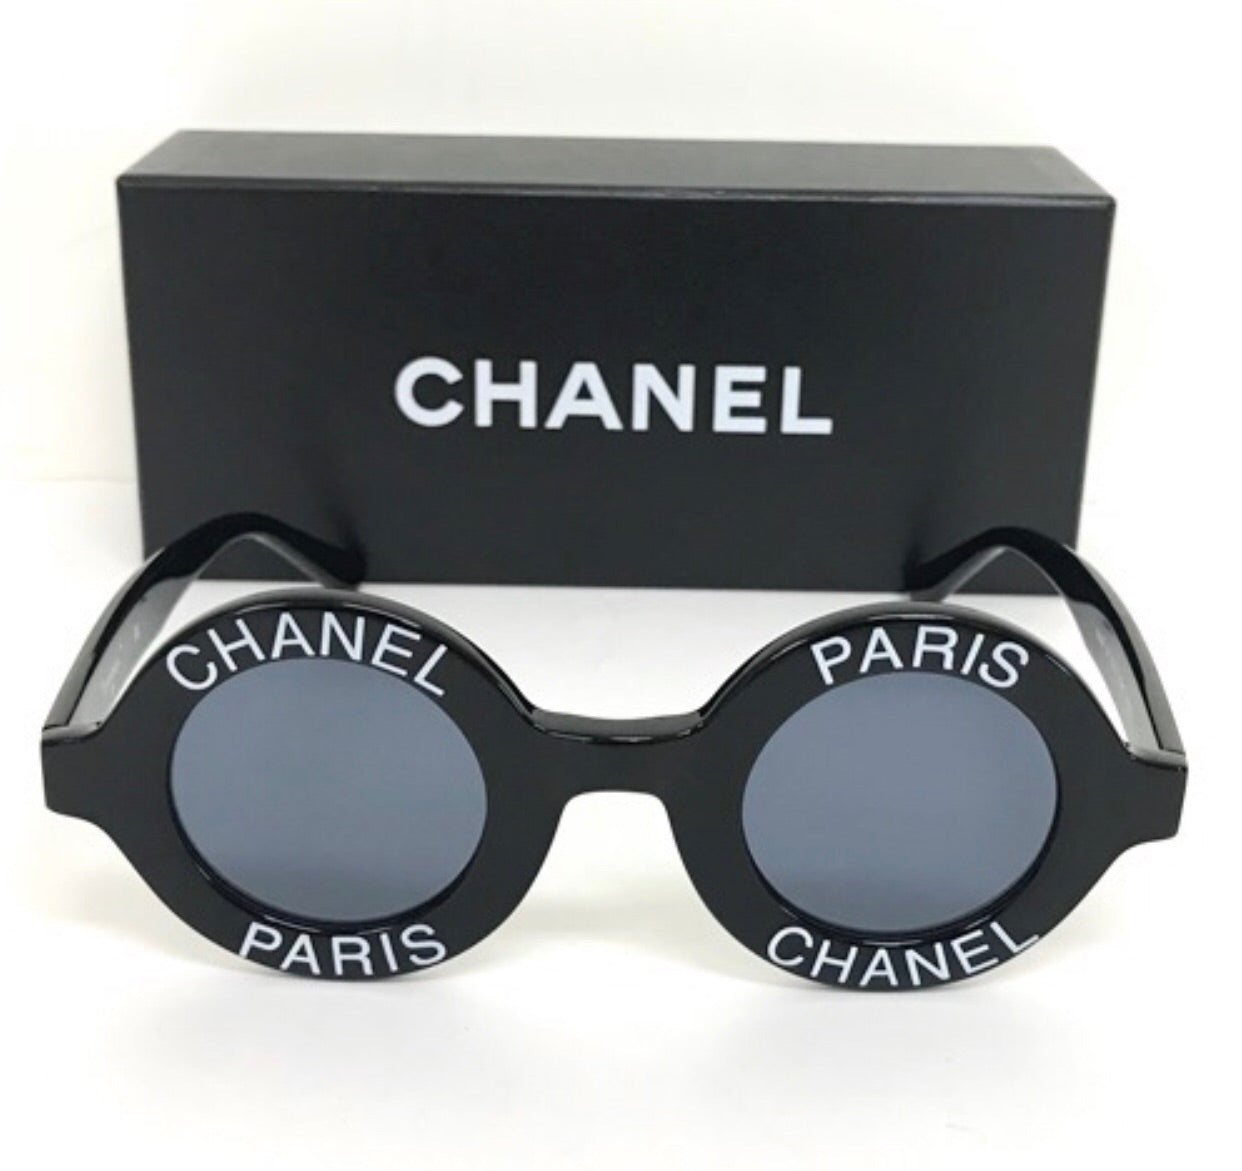 750b00e0ec517 Vintage CHANEL black round frame mod sunglasses with white CHANEL PARIS logo .